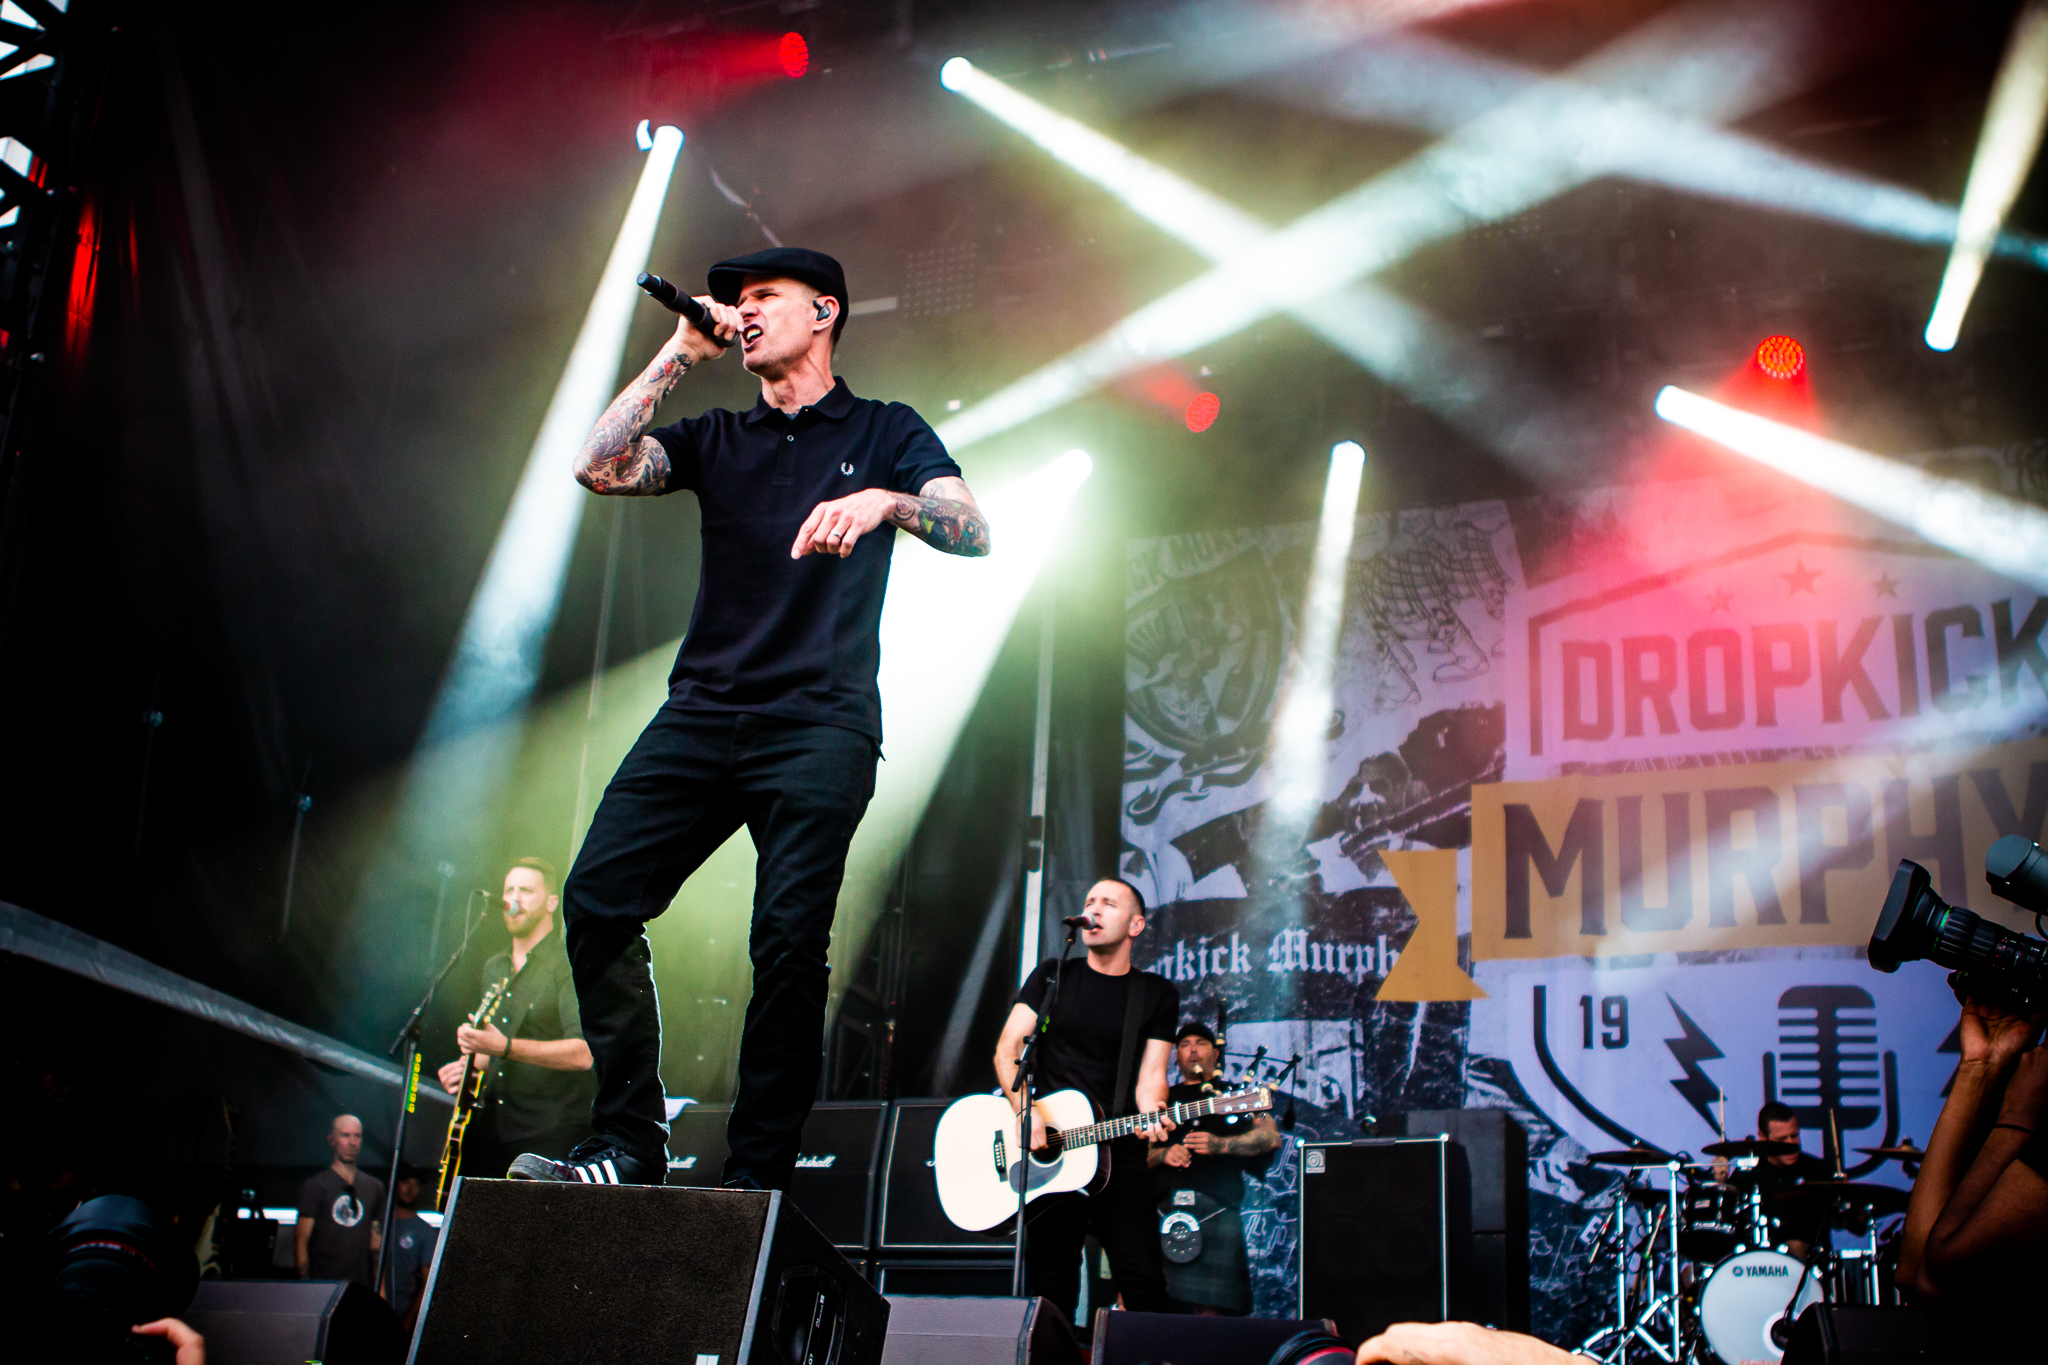 Dropkick Murphys – Luke Sutton 04